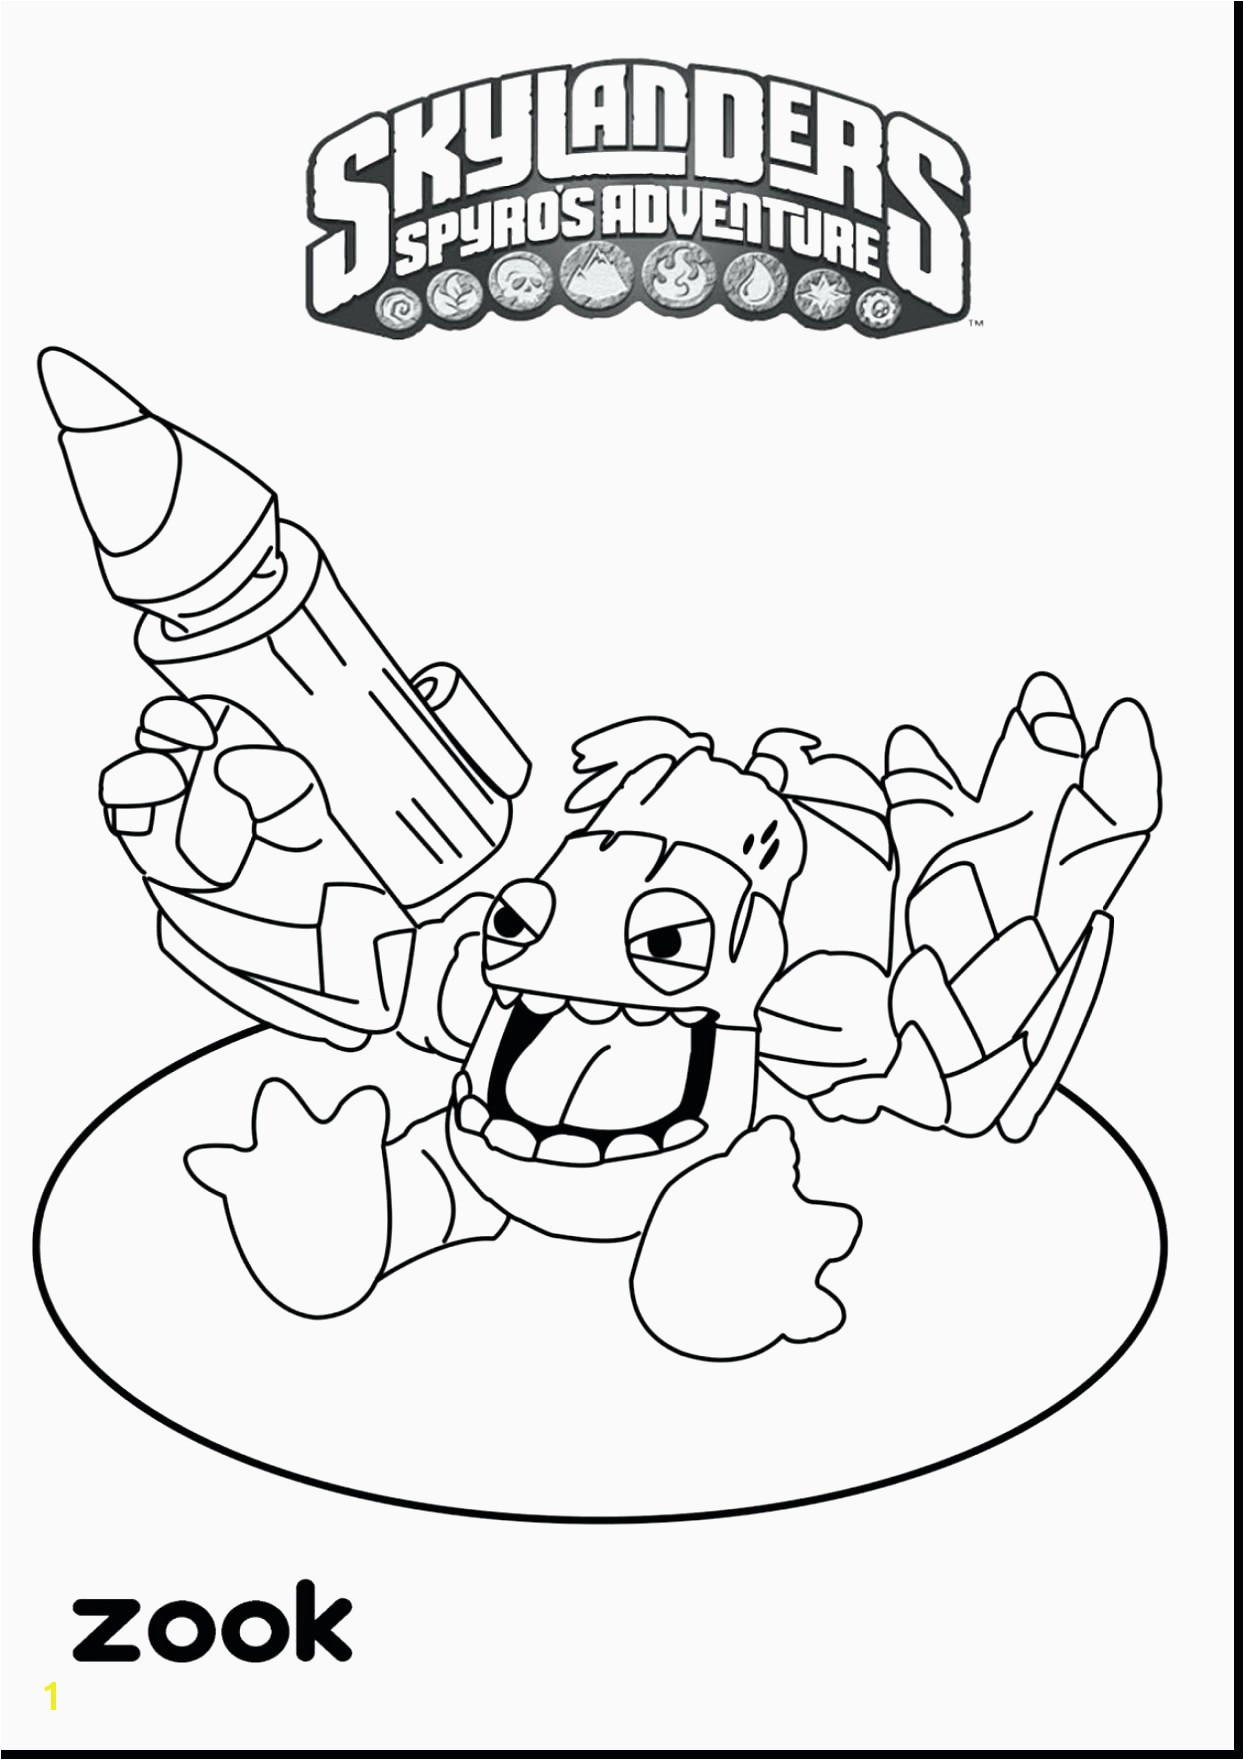 Free Frog Coloring Pages Inspirational Brain Coloring Page Heathermarxgallery Free Frog Coloring Pages Beautiful Frog